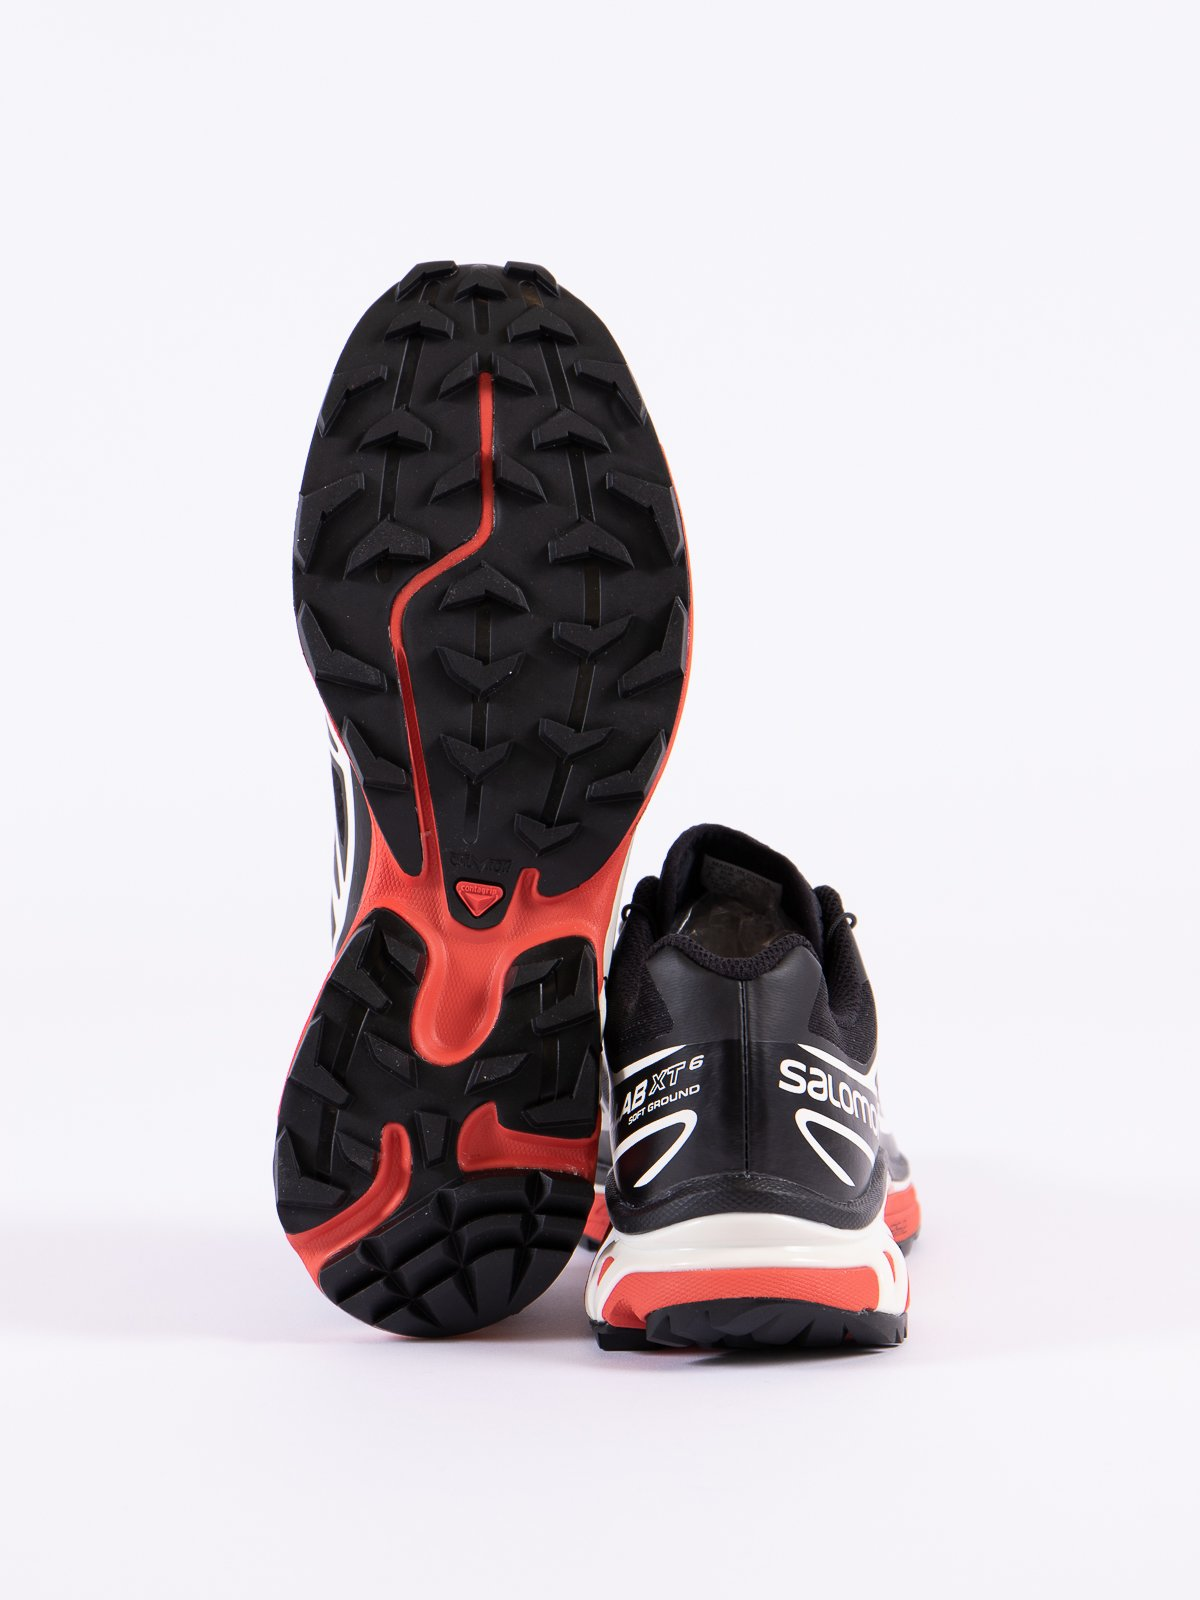 BLACK/VANILLA/RACING RED XT–6 SOFTGROUND LT ADV - Image 5